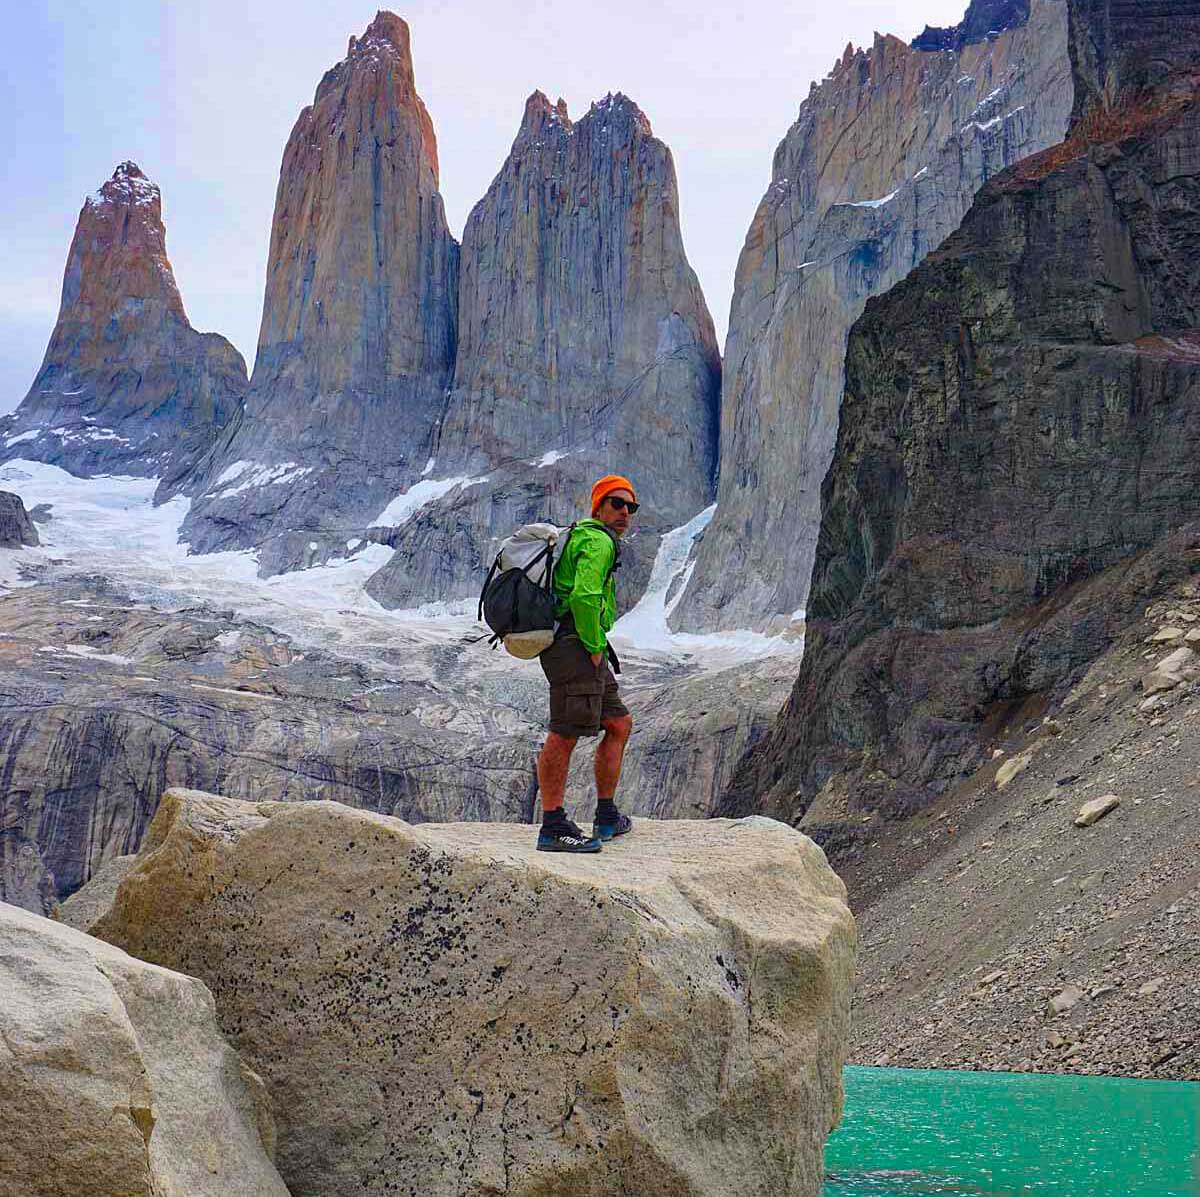 Torres del Paine W Trek Itinerary for 3-4 Days